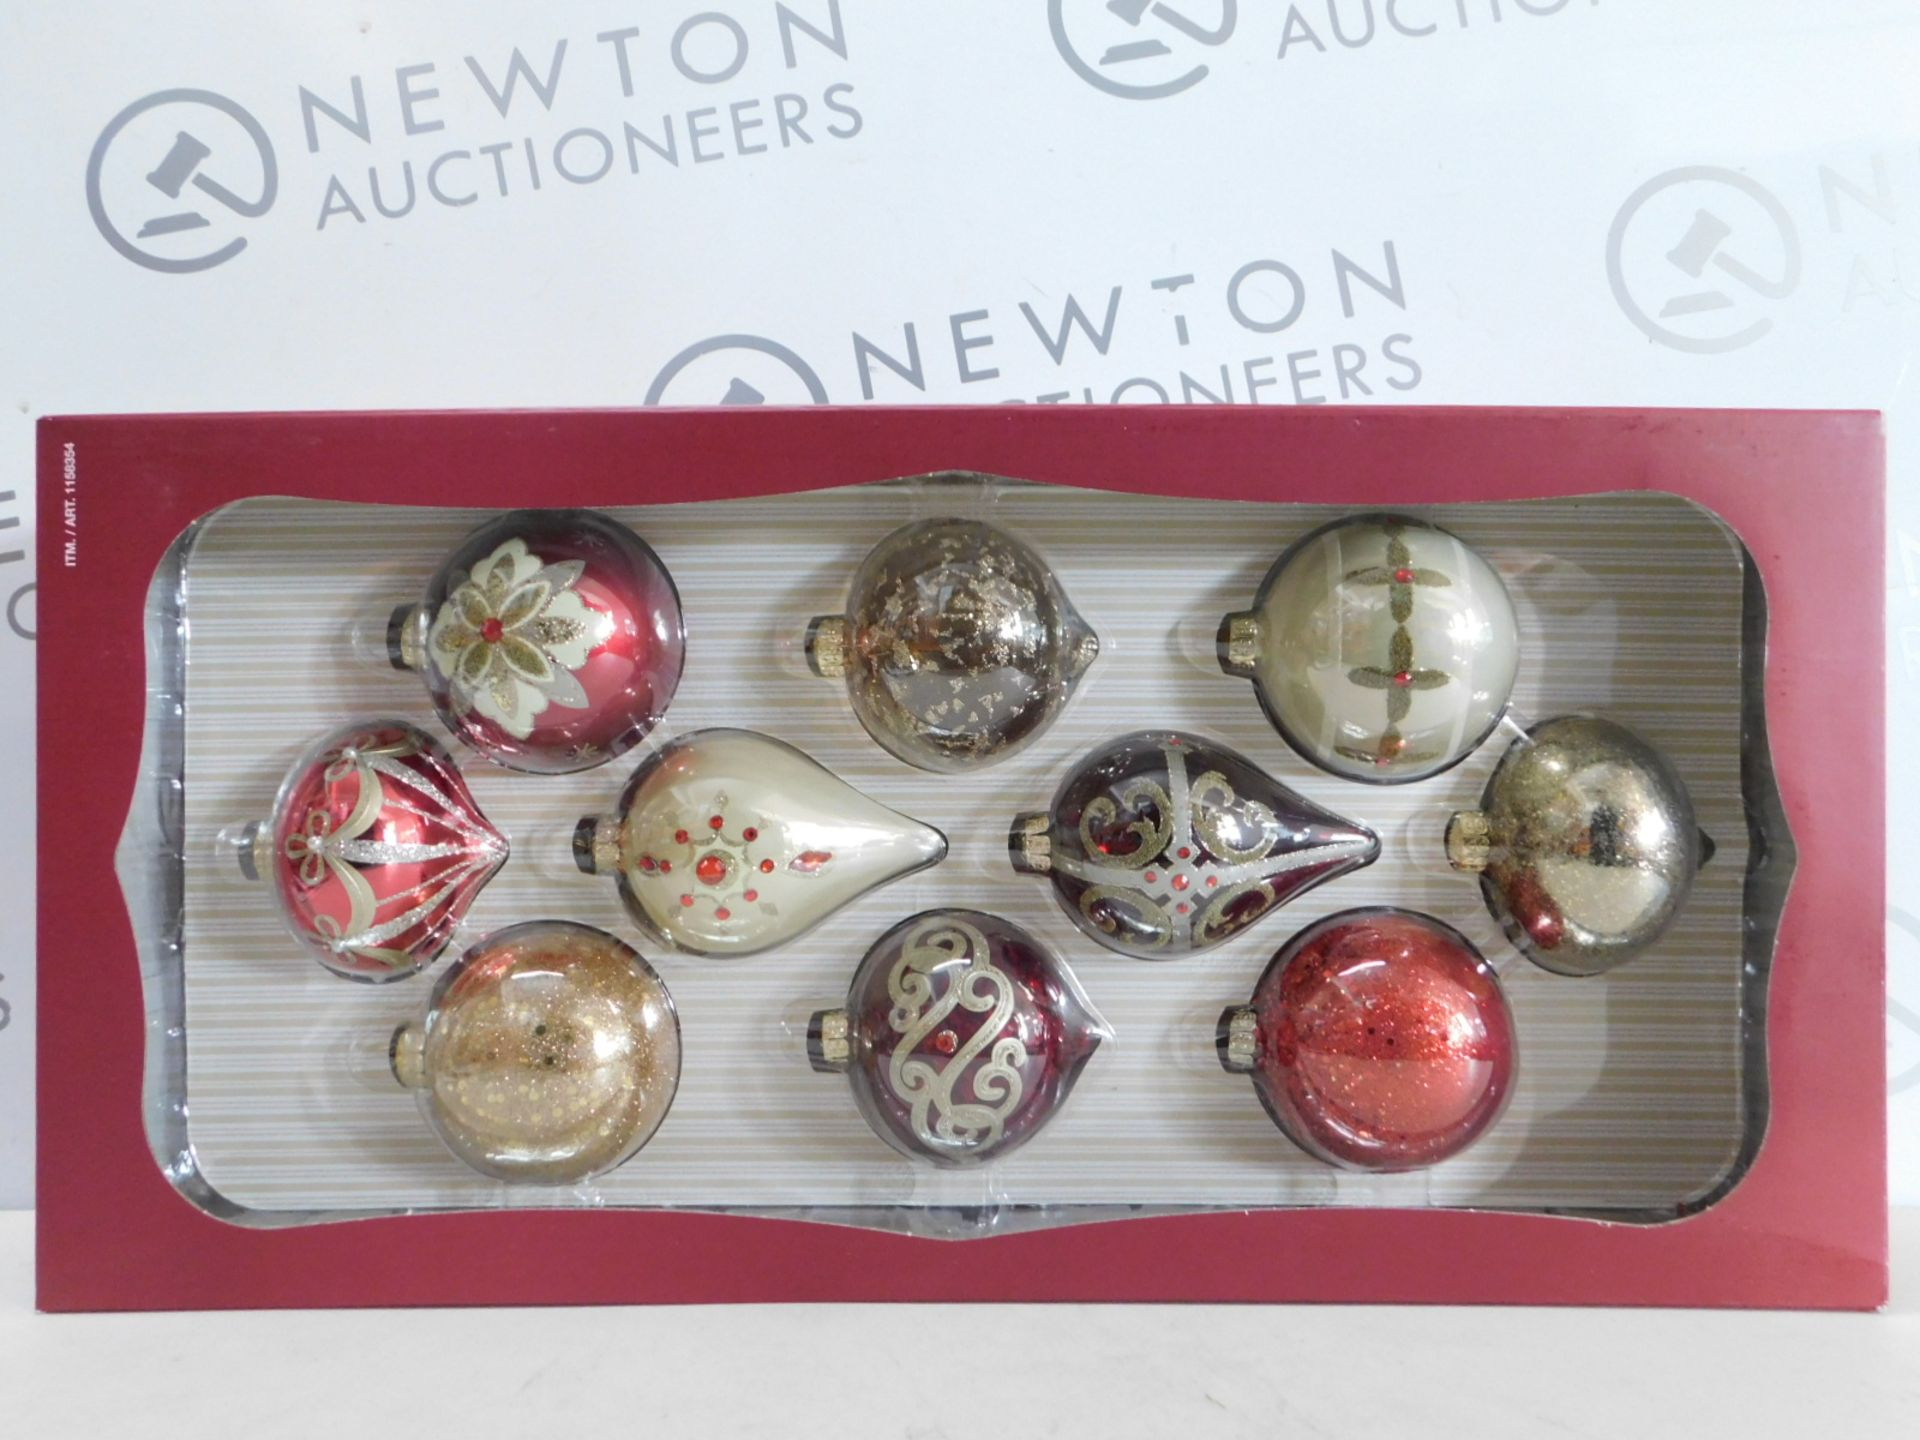 Lot 281 - 1 BRAND NEW BOXED KIRKLAND SIGNATURE 10 HAND-DECORATED GLASS ORNAMENTS RRP £29.99